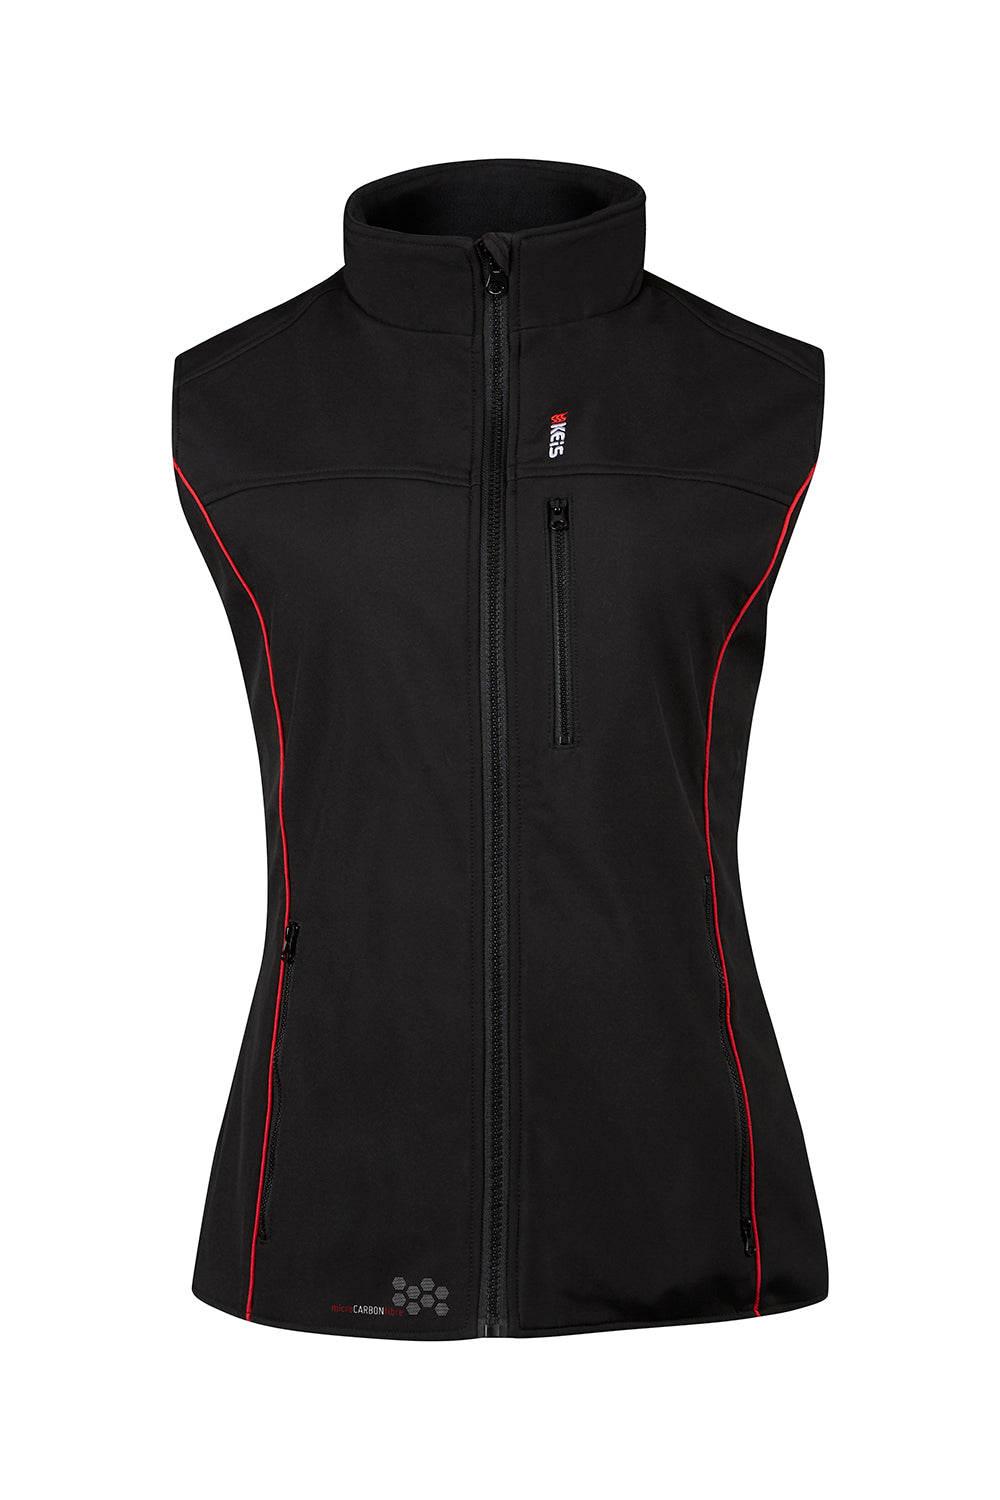 Keis ladies bodywarmer balck with red piping down front